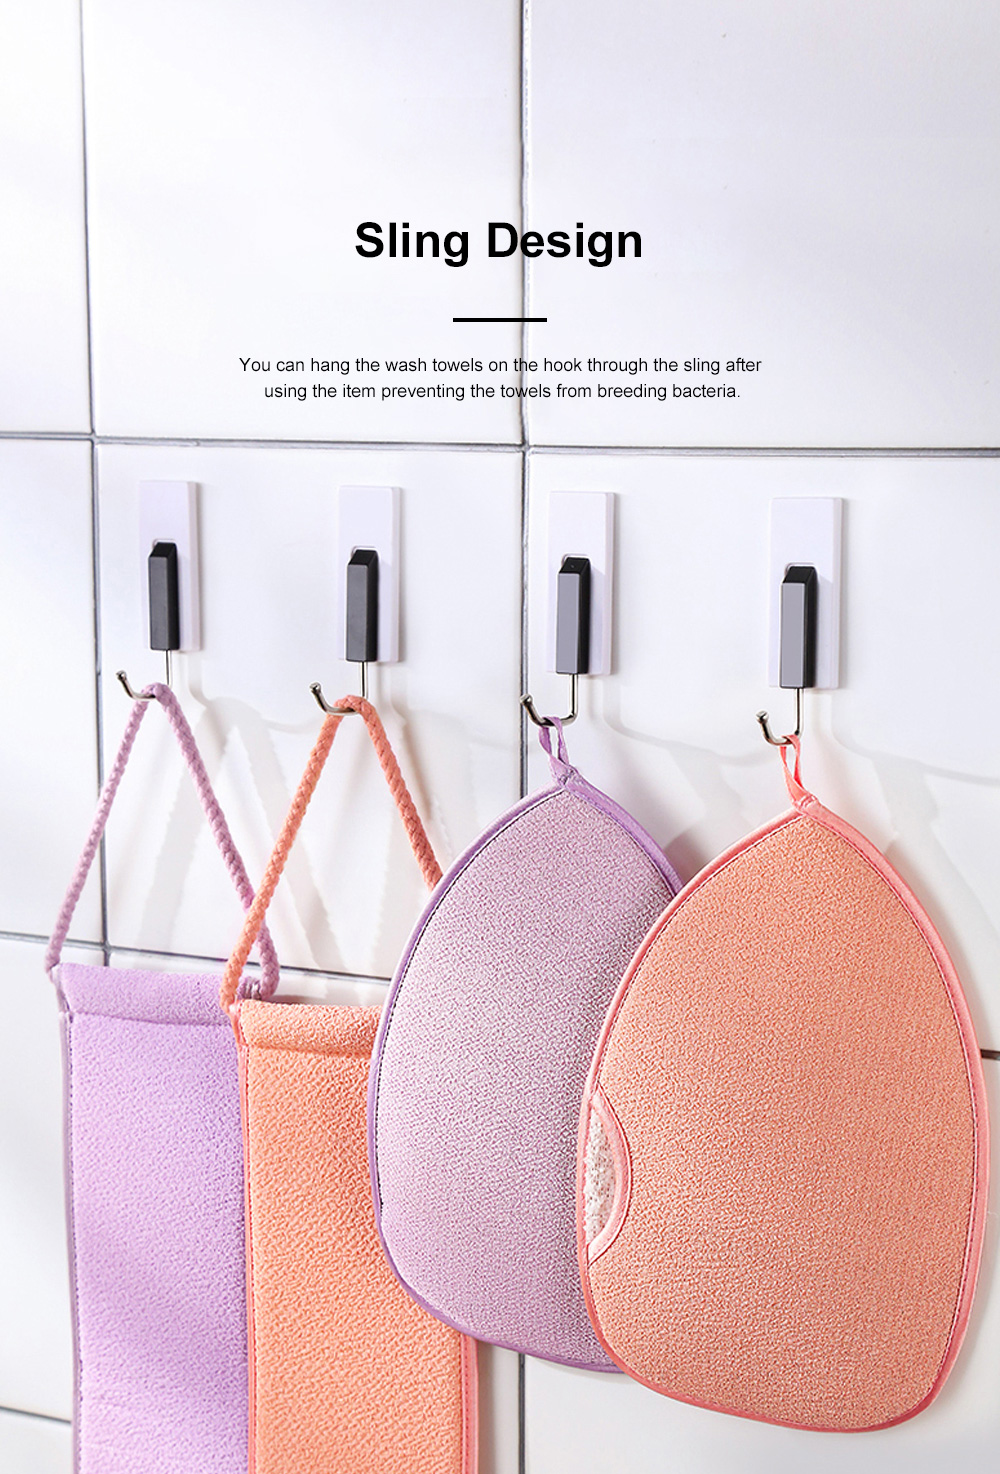 Non-toxic Soft Bamboo Fiber 2PCS Wash Towels Suit Bathing Tool with Double Textures Sling Hand Grip Design 4